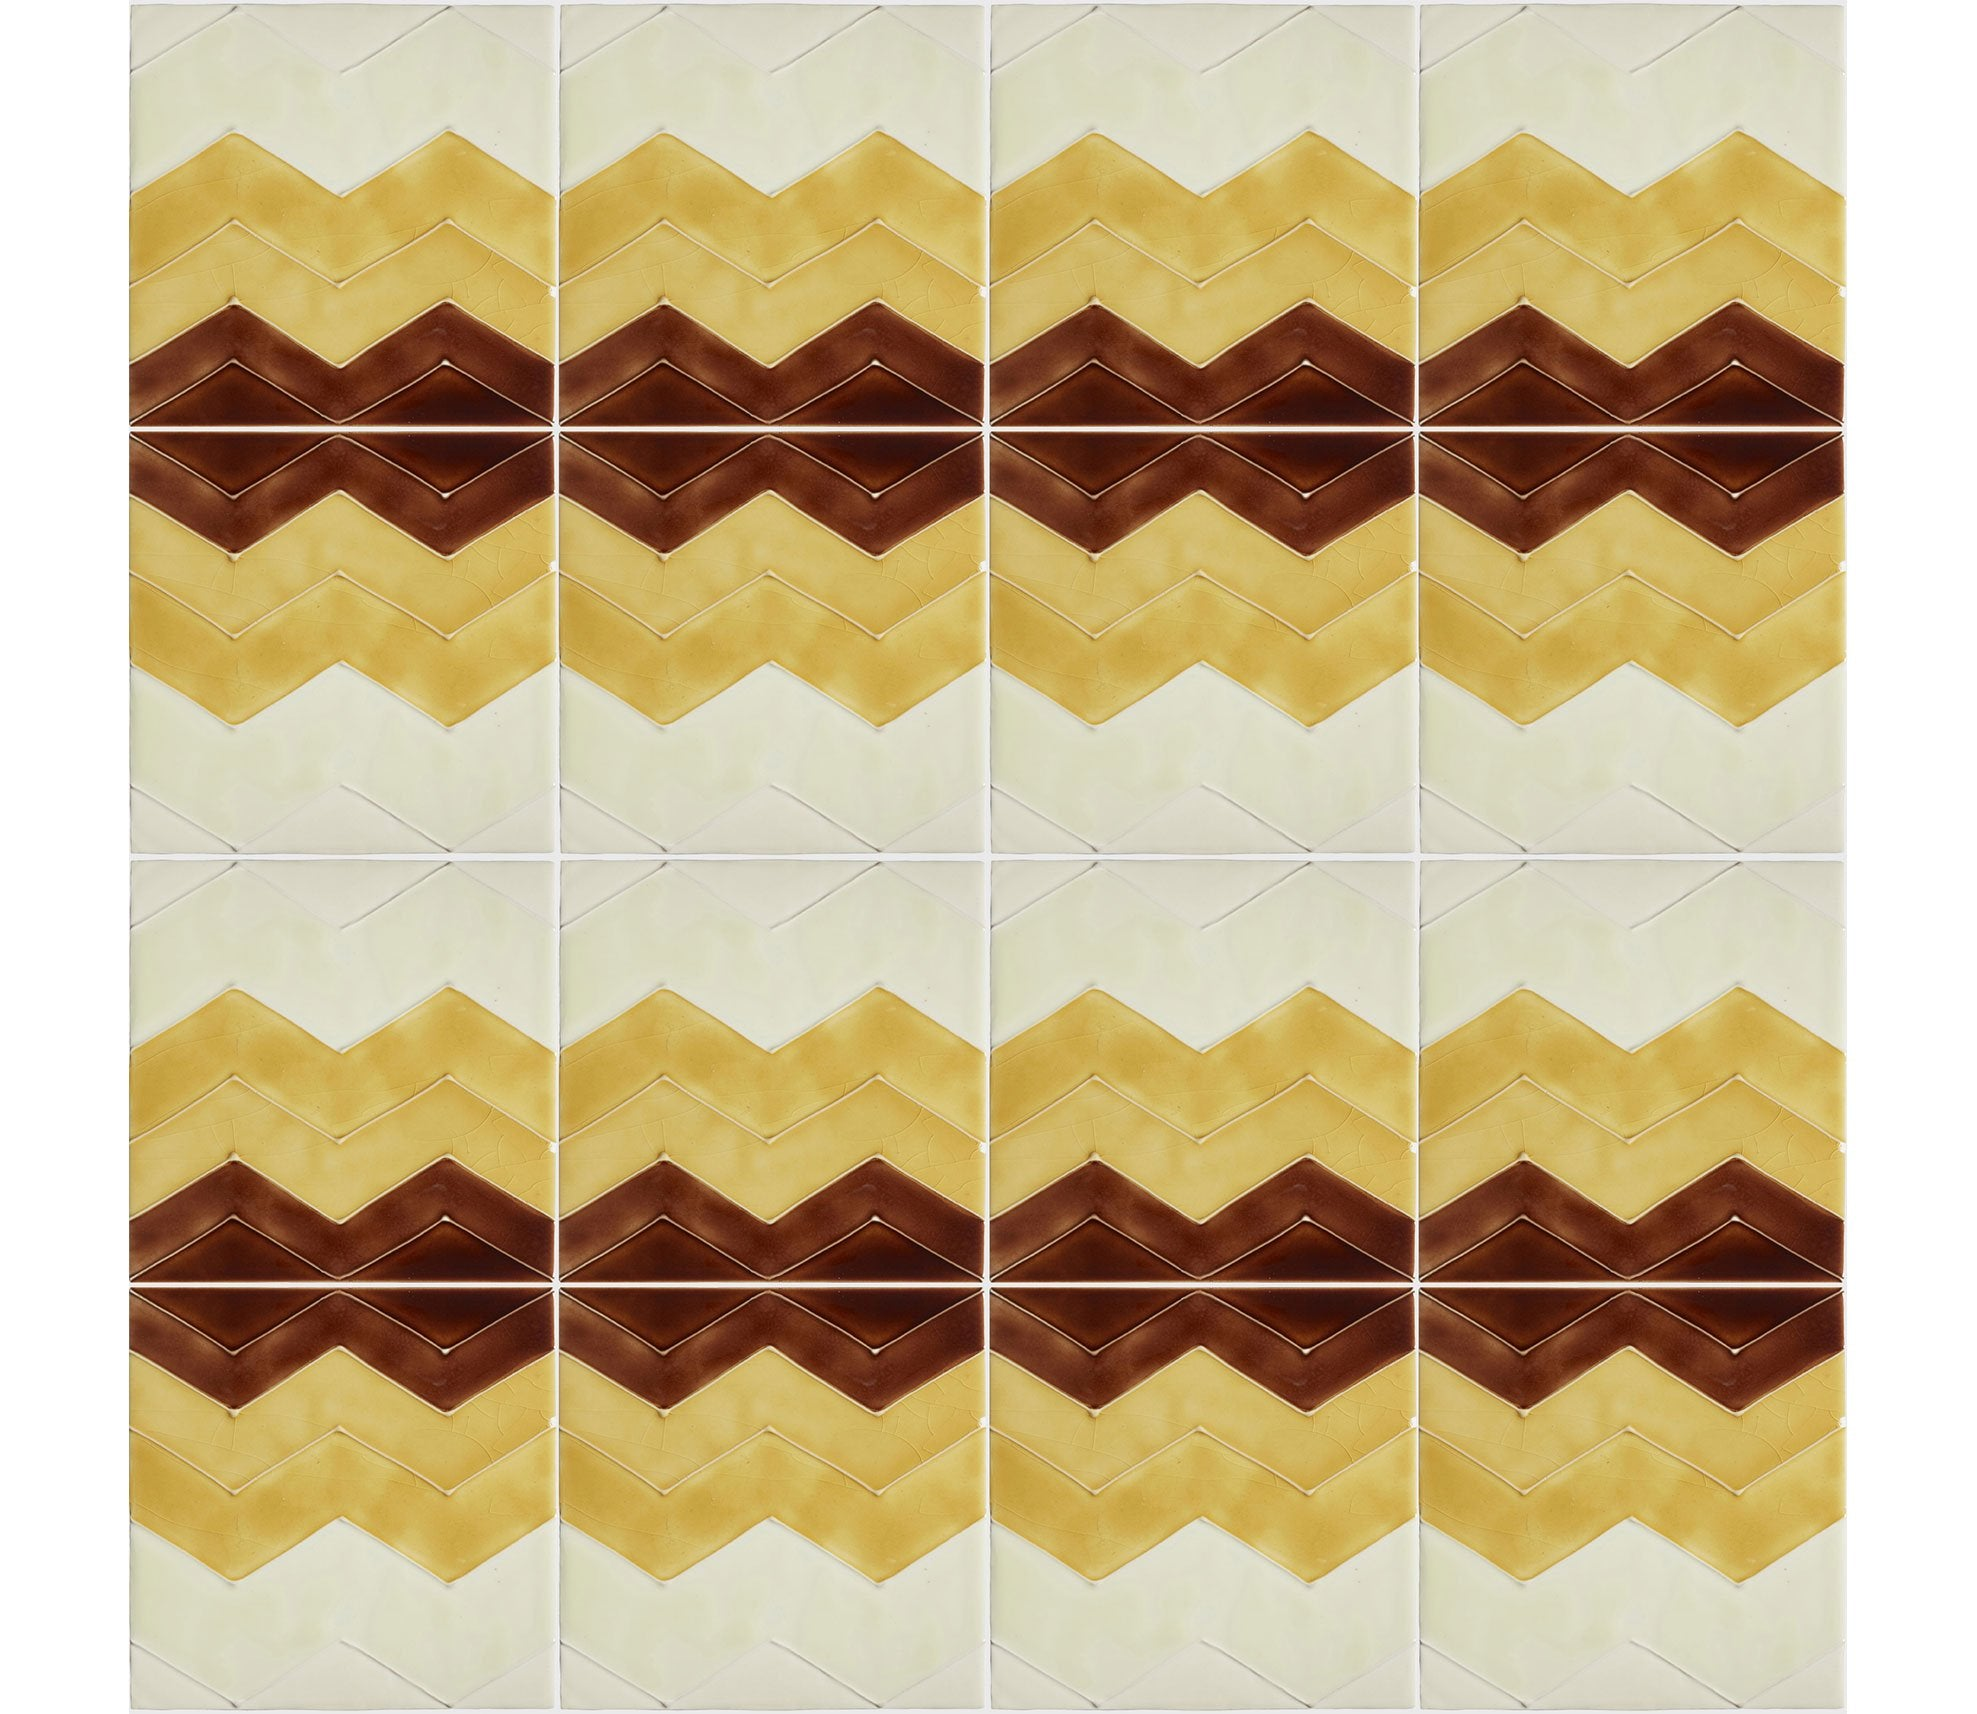 Hanley Tube Lined Decorative Tiles Product Image 43